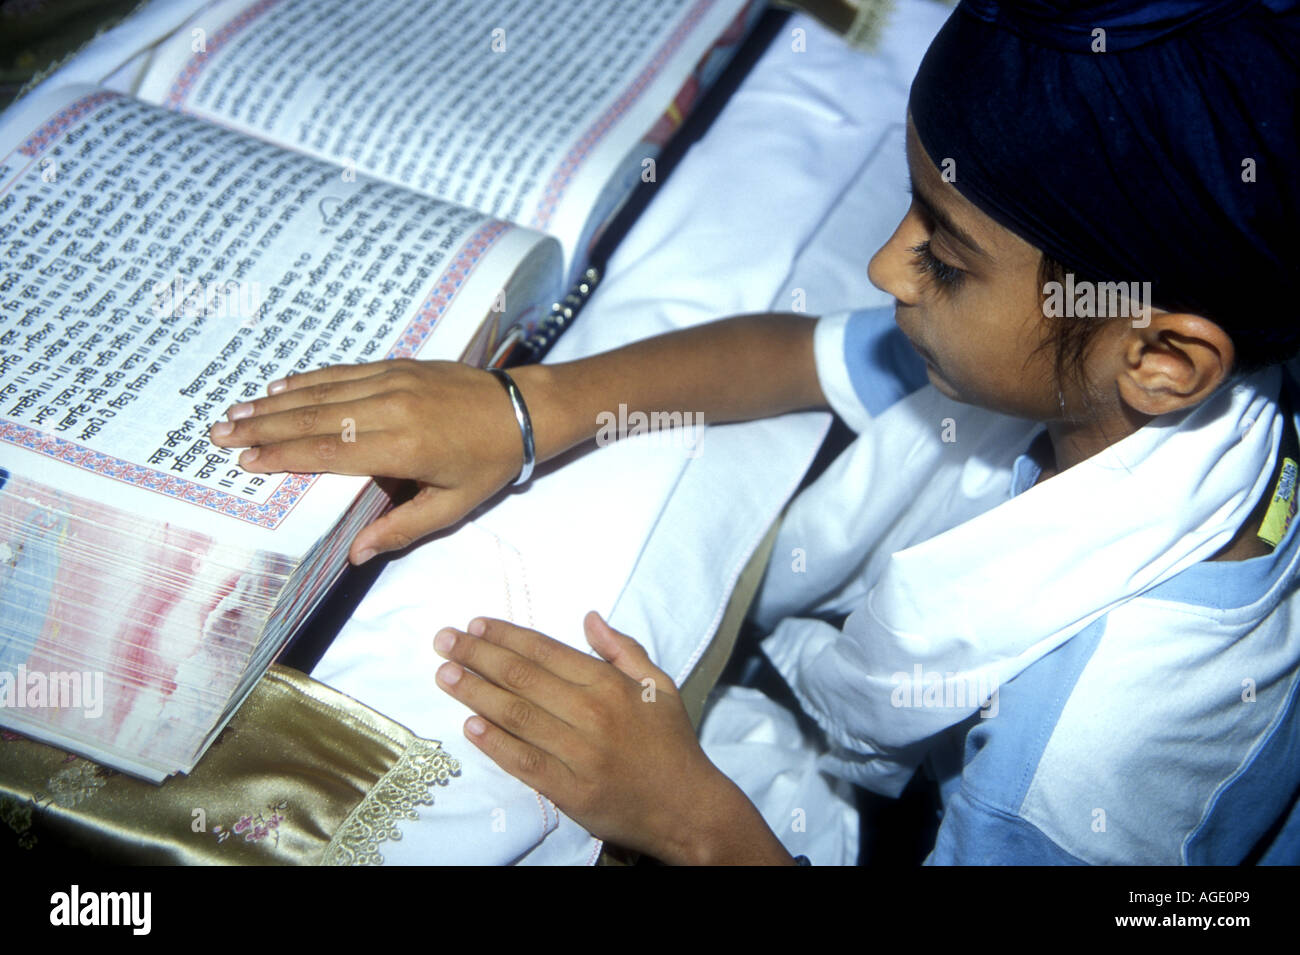 Guru Granth Sahib Stock Photos Guru Granth Sahib Stock Images Alamy